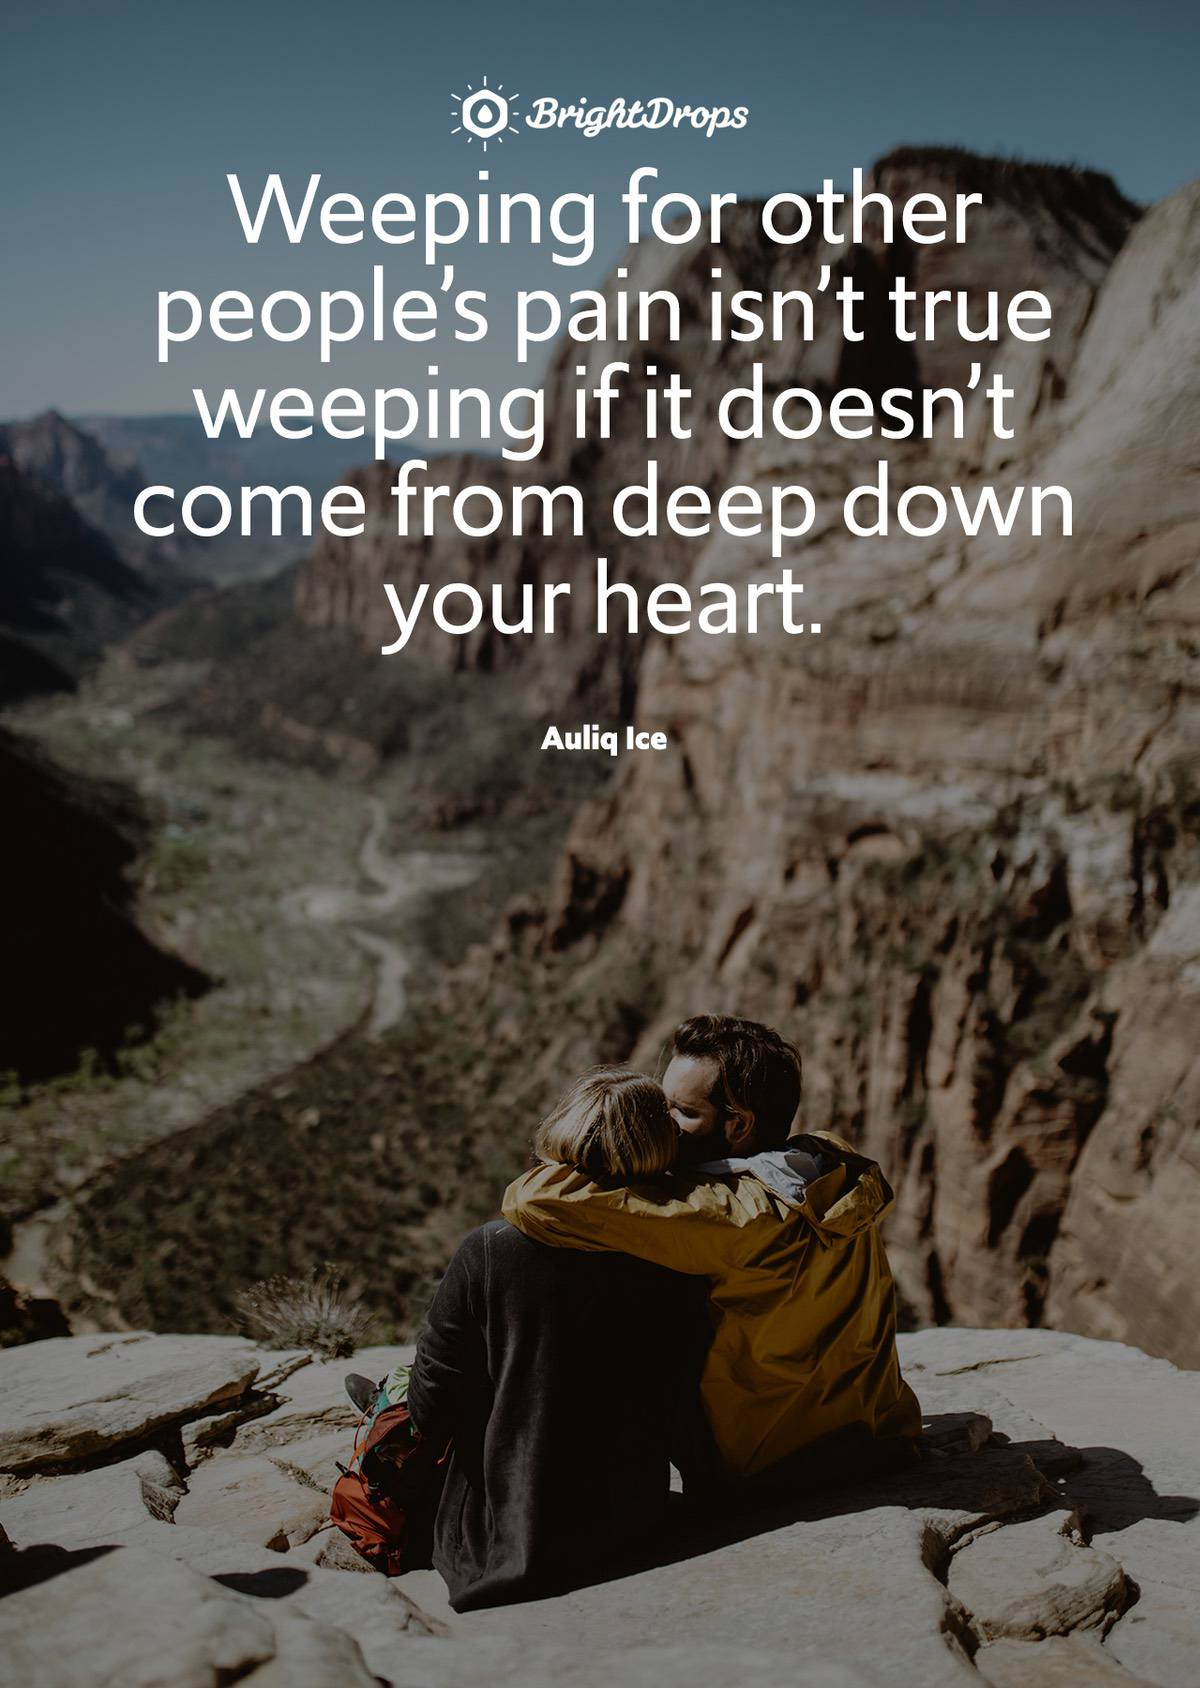 """Weeping for other people's pain isn't true weeping if it doesn't come from deep down your heart."" - Auliq Ice"